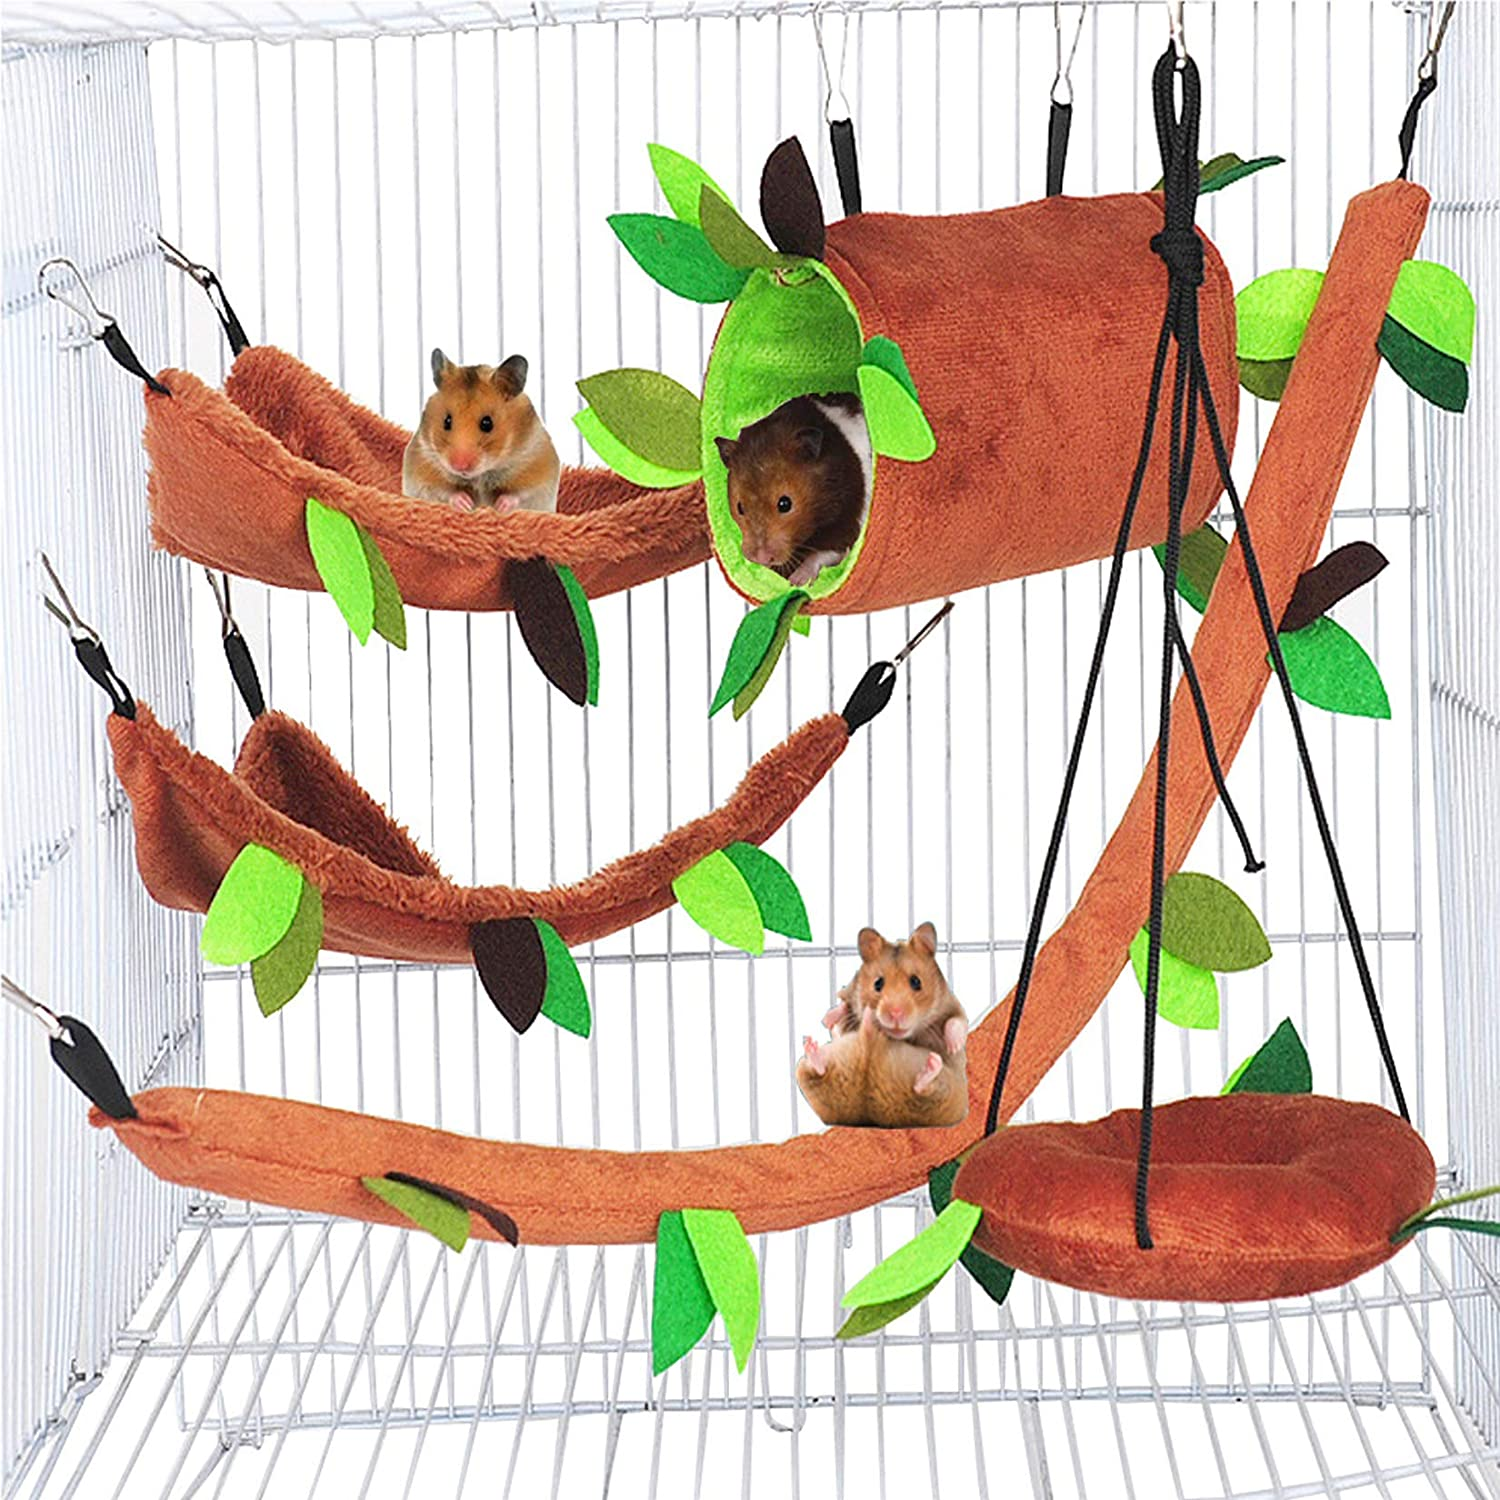 Hamiledyi Hamster Hammock Small Animals House Selling and selling Hanging R Bed Inexpensive Warm